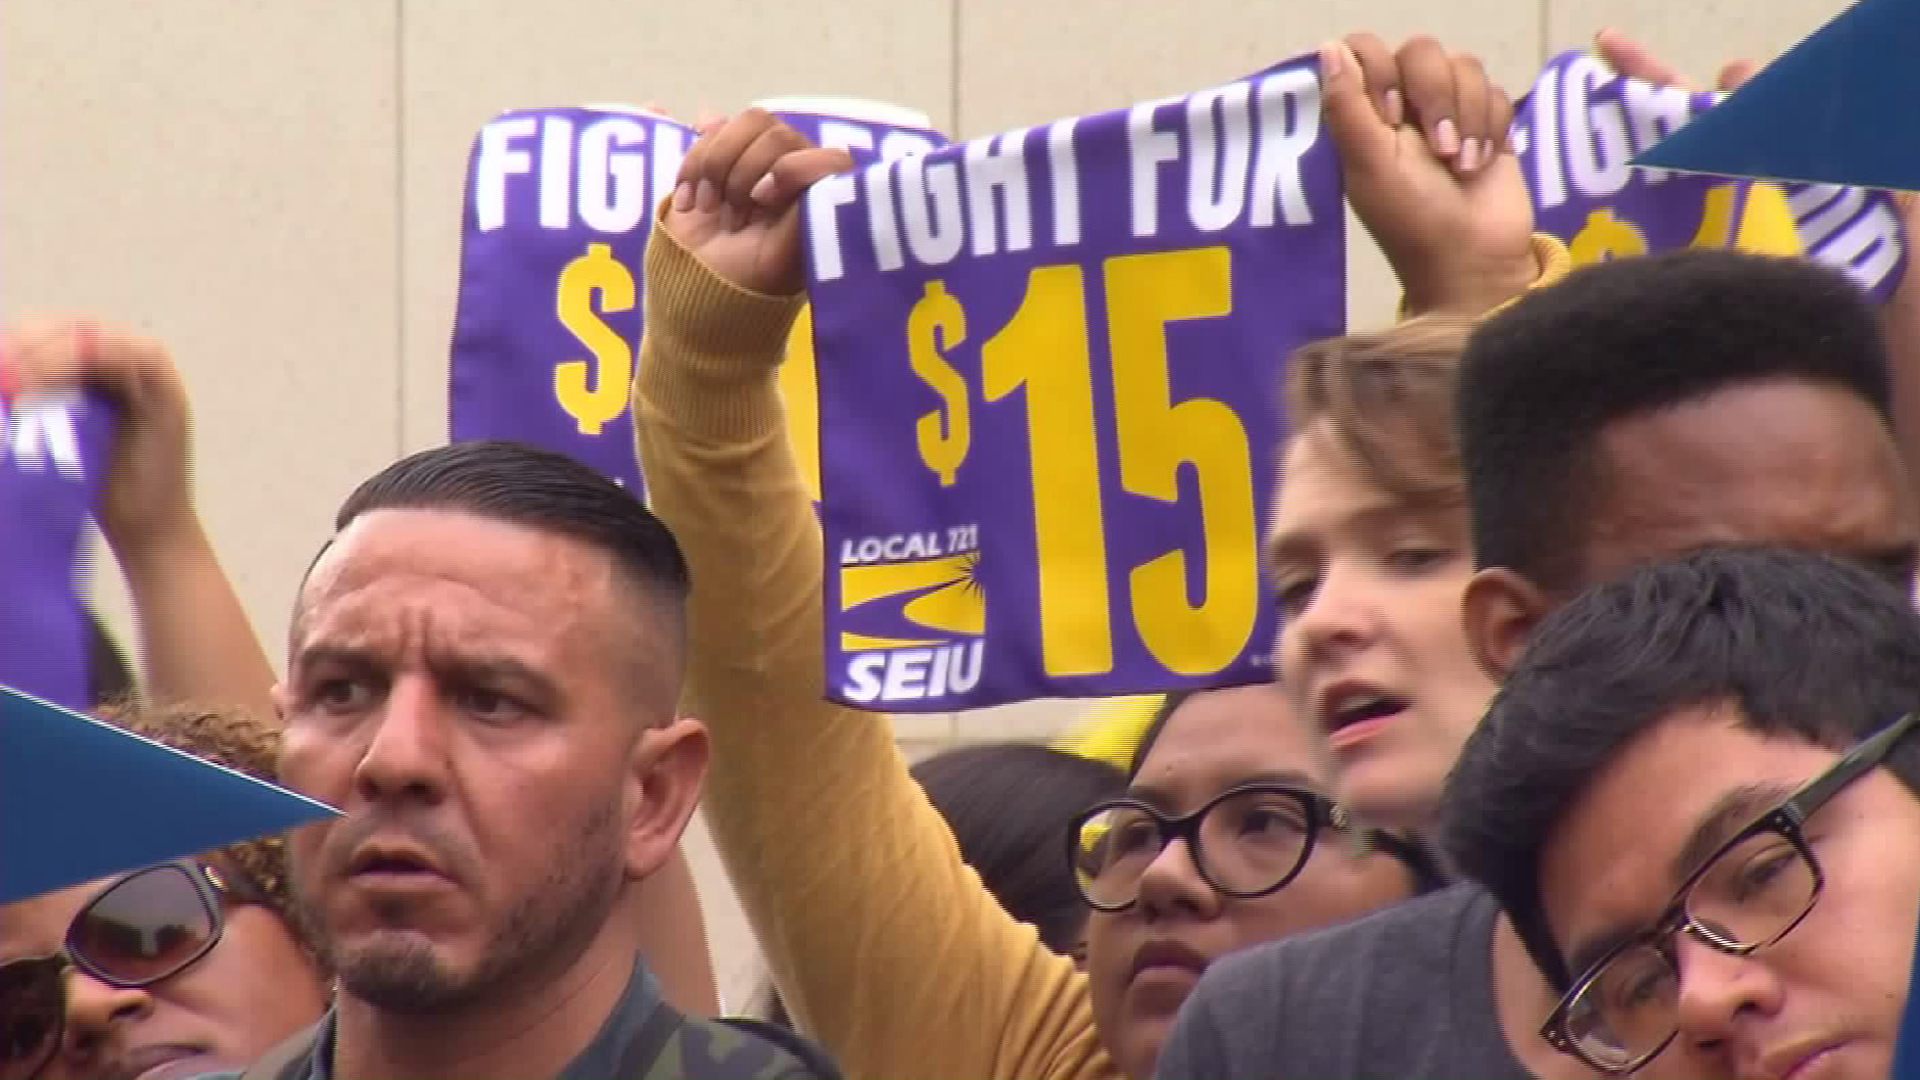 Supporters of the minimum wage hike rally outside the Hall of Administration on July 21, 2015. (Credit: KTLA)